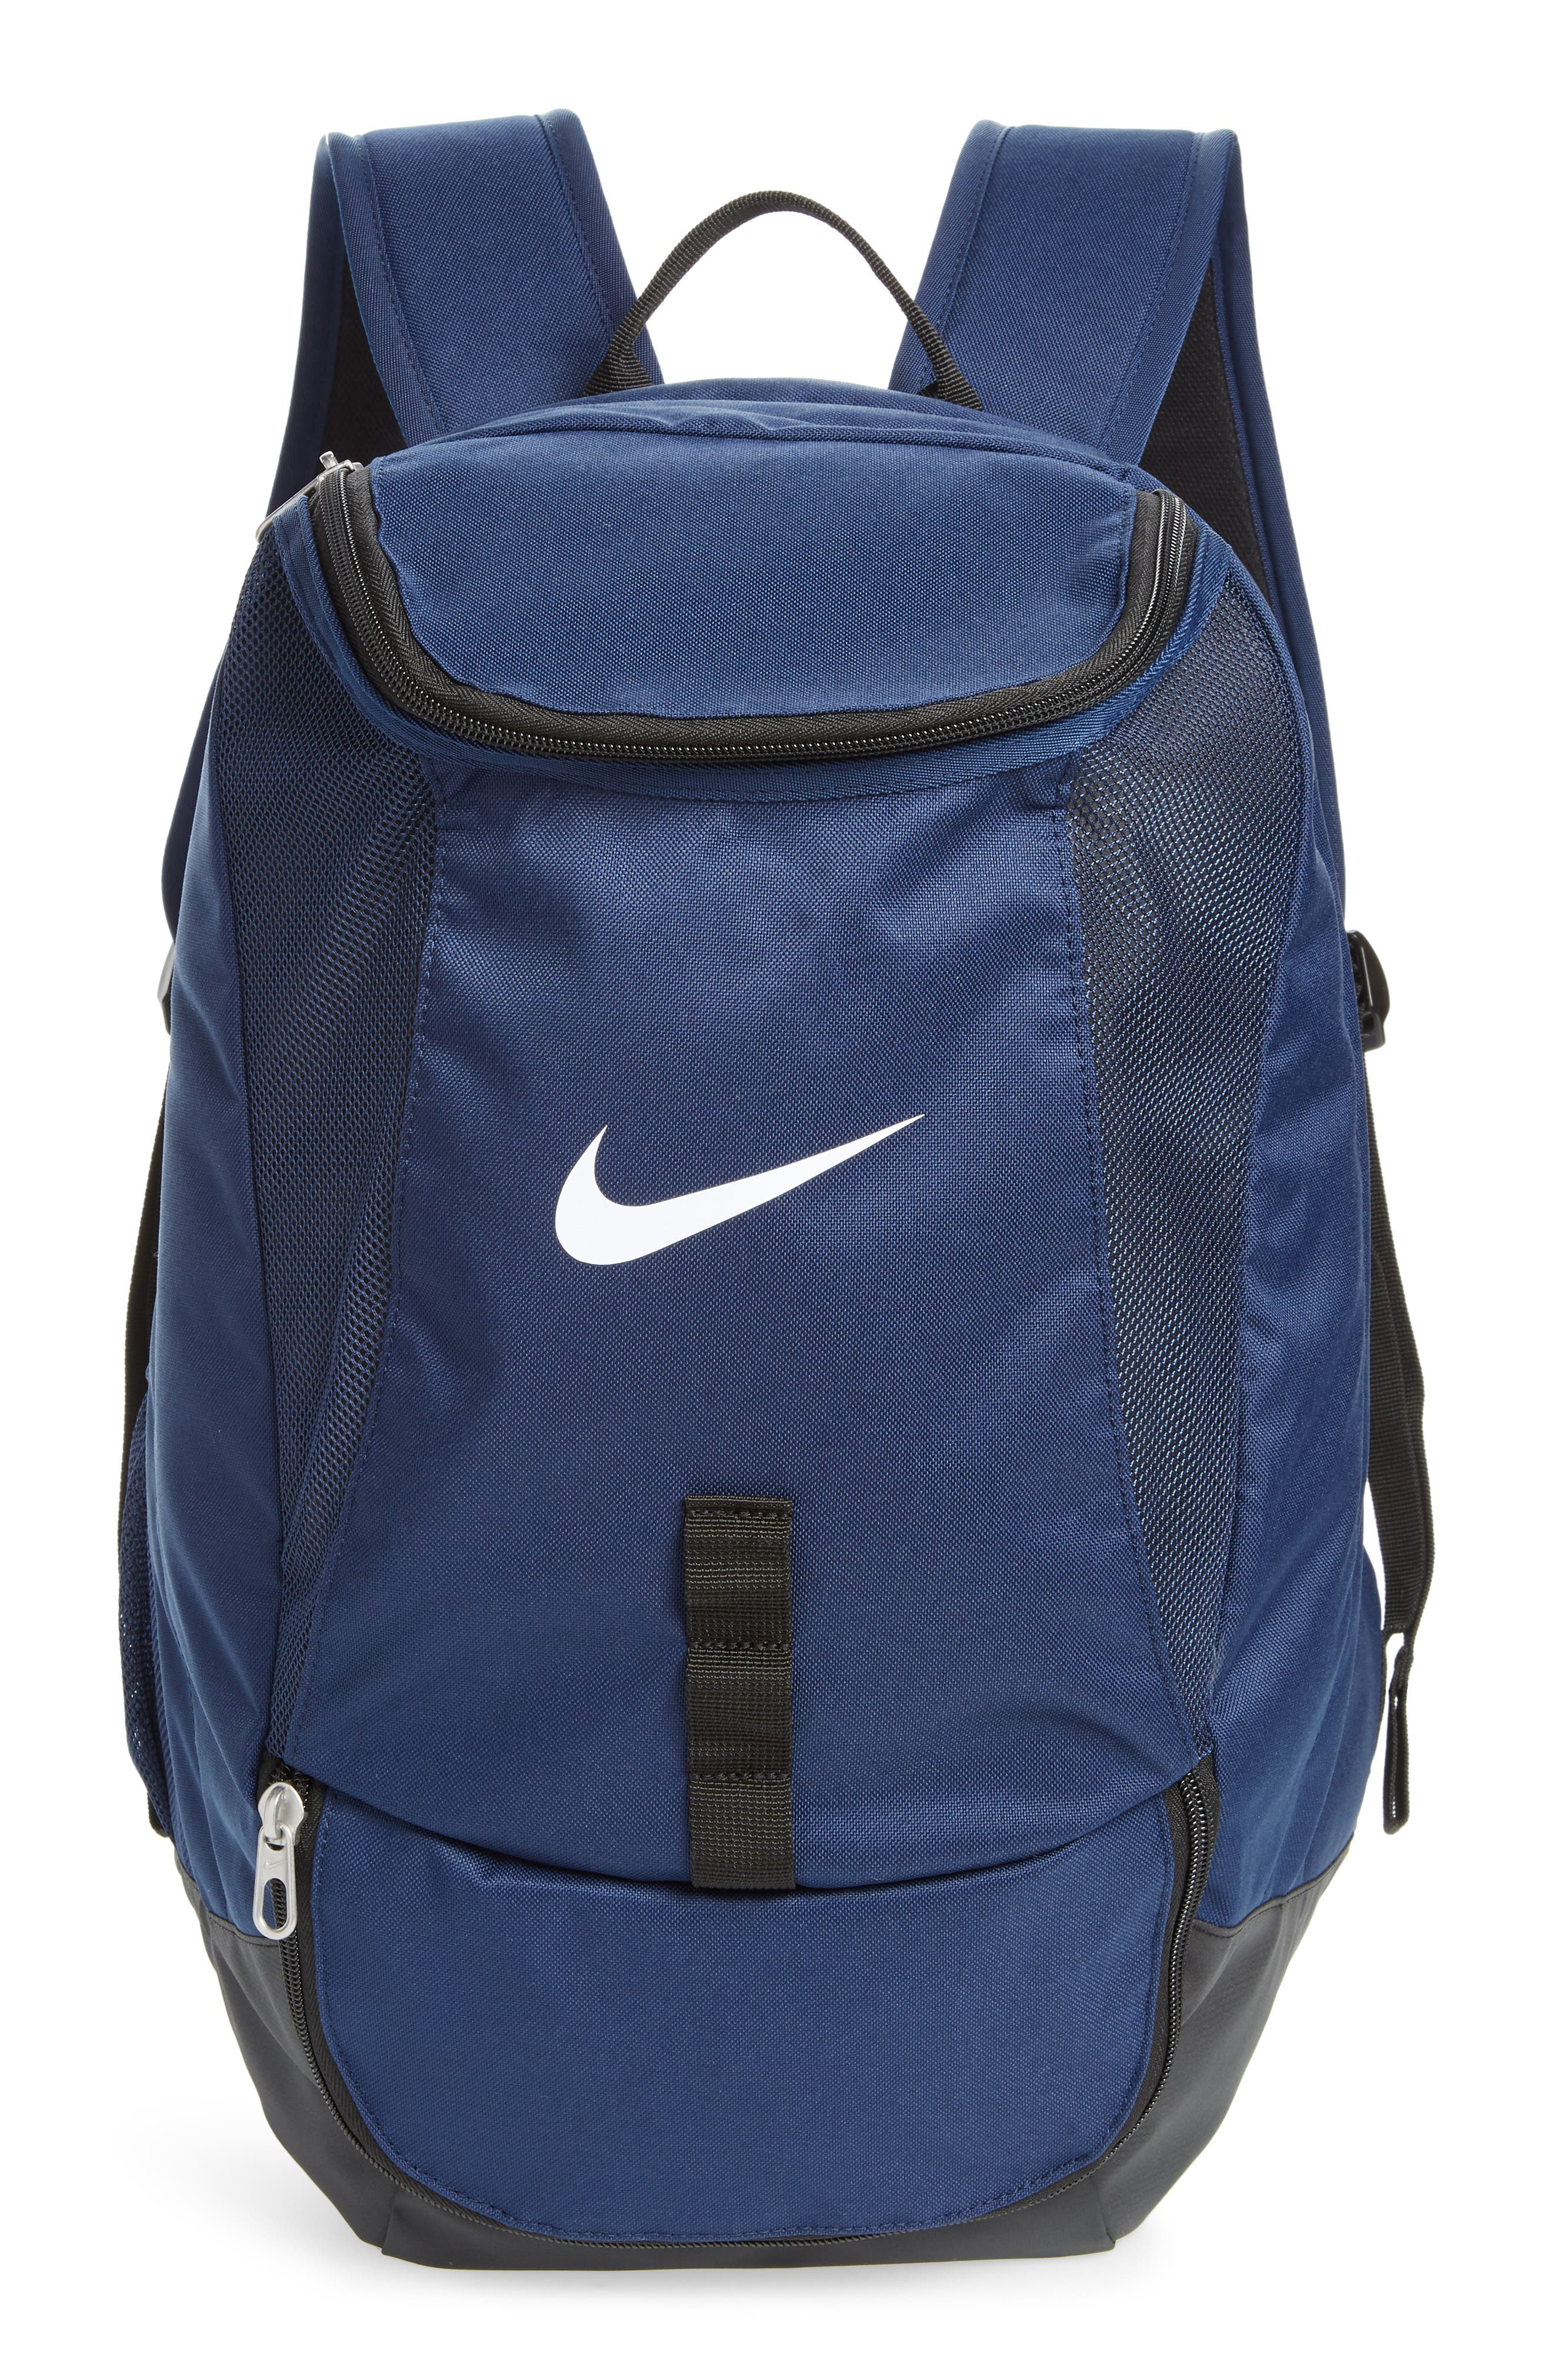 Club Team Backpack,                             Main thumbnail 1, color,                             Midnight Navy/ Black/ White